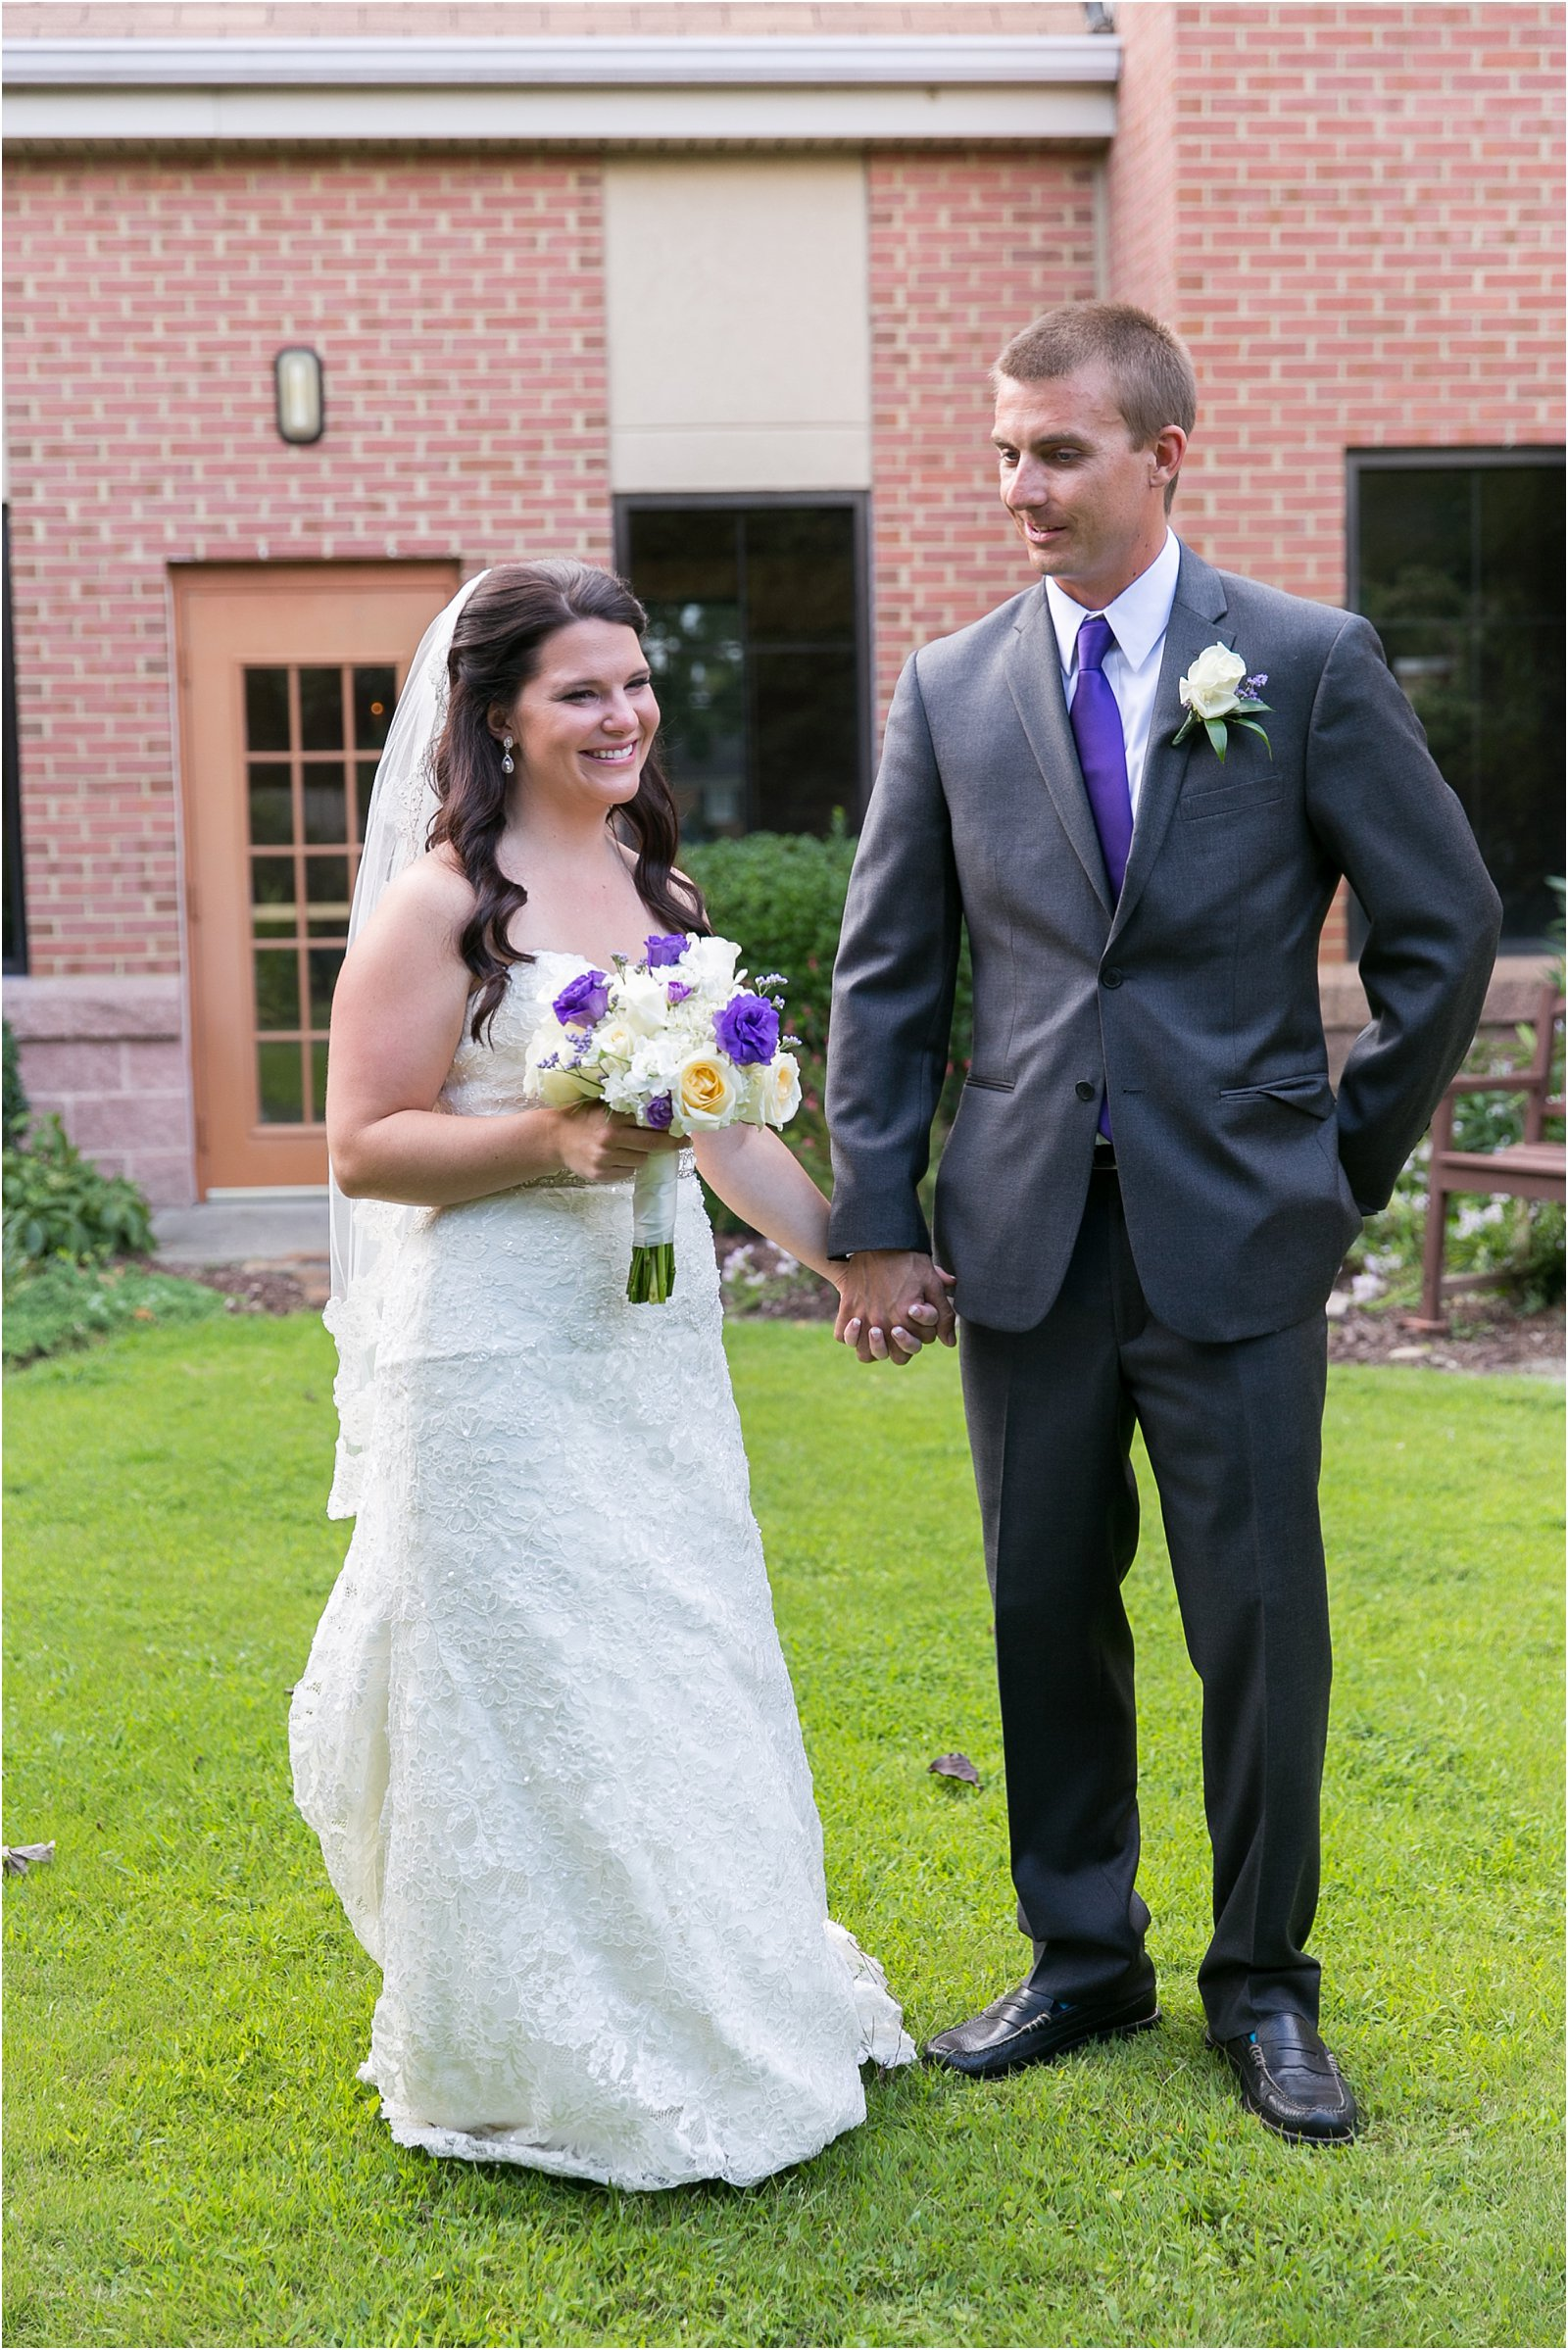 jessica_ryan_photography_bride_groom_suffolk_wedding_virginia_wedding_photography_hampton_roads_0240